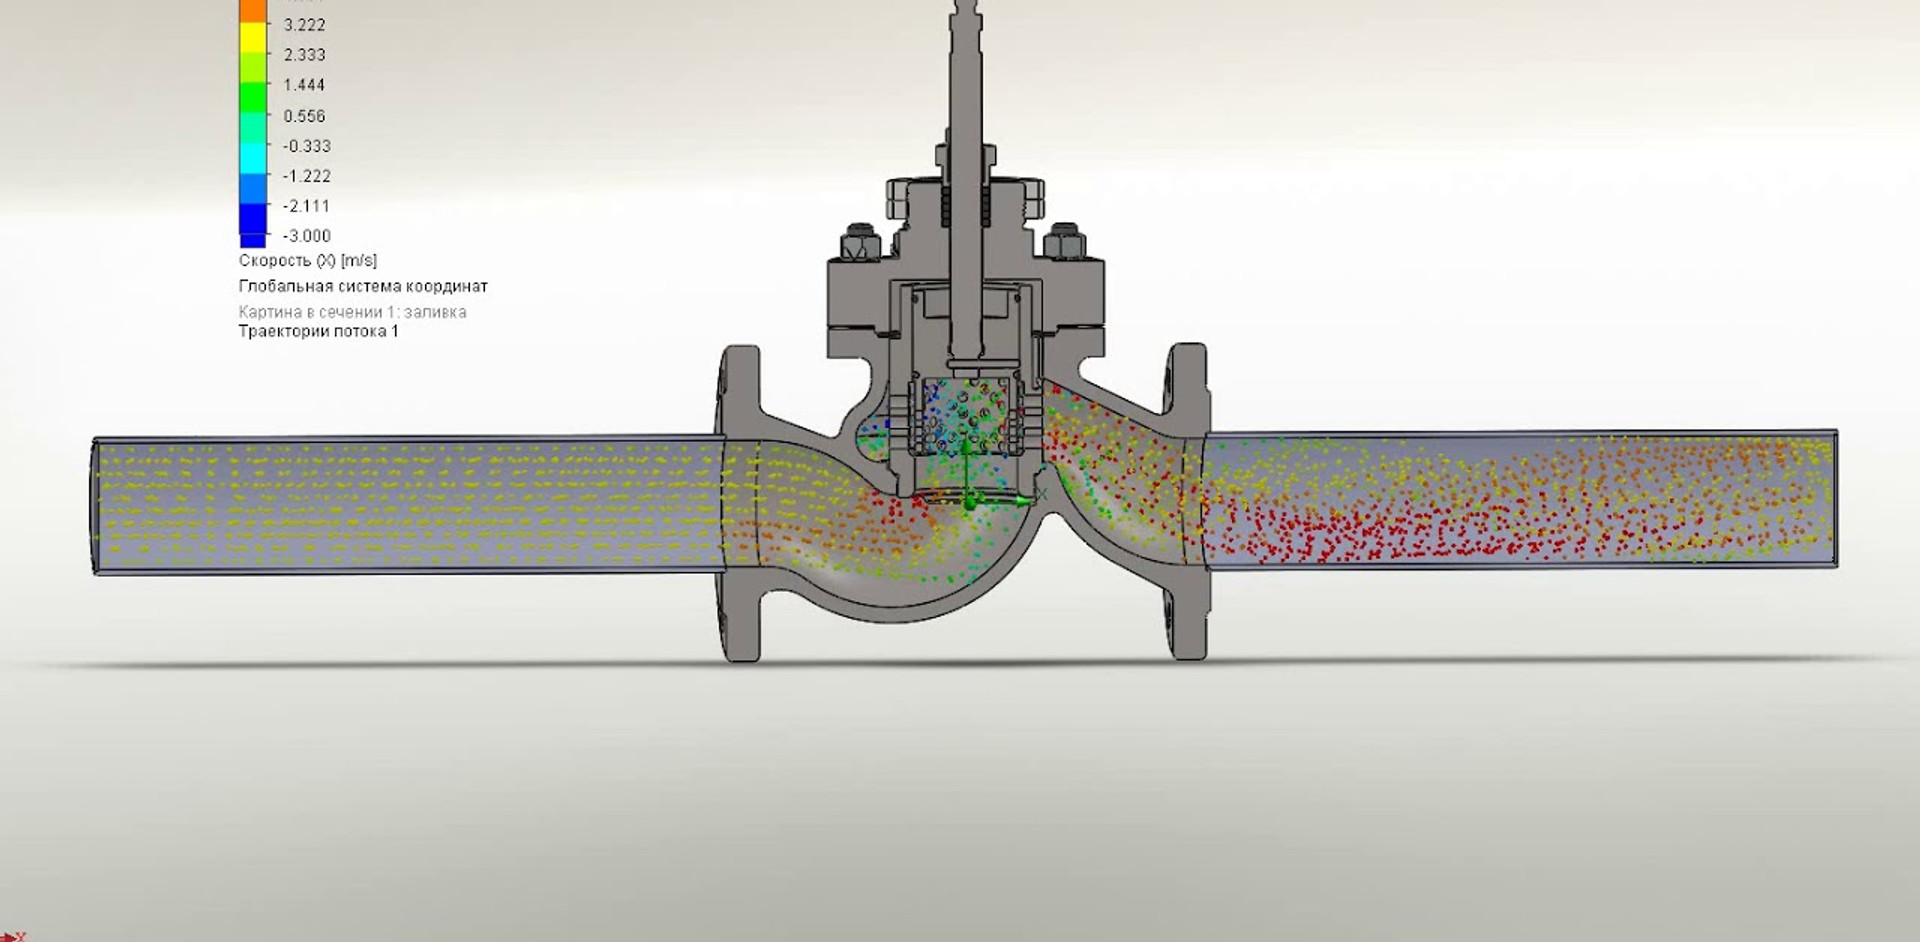 Kv checking of pressure control valve with perforate cylinders